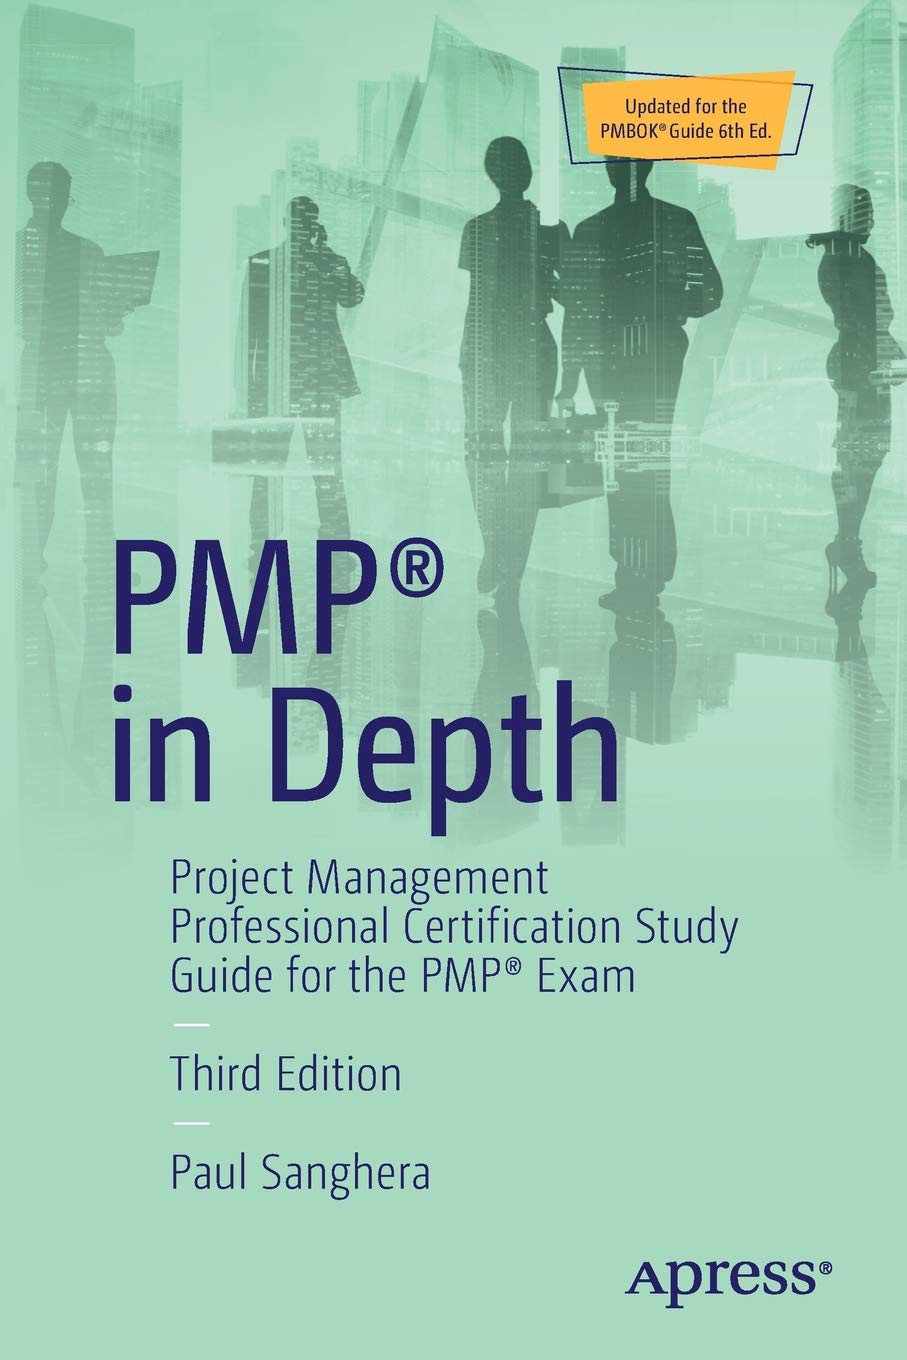 Buy Pmp R In Depth Project Management Professional Certification